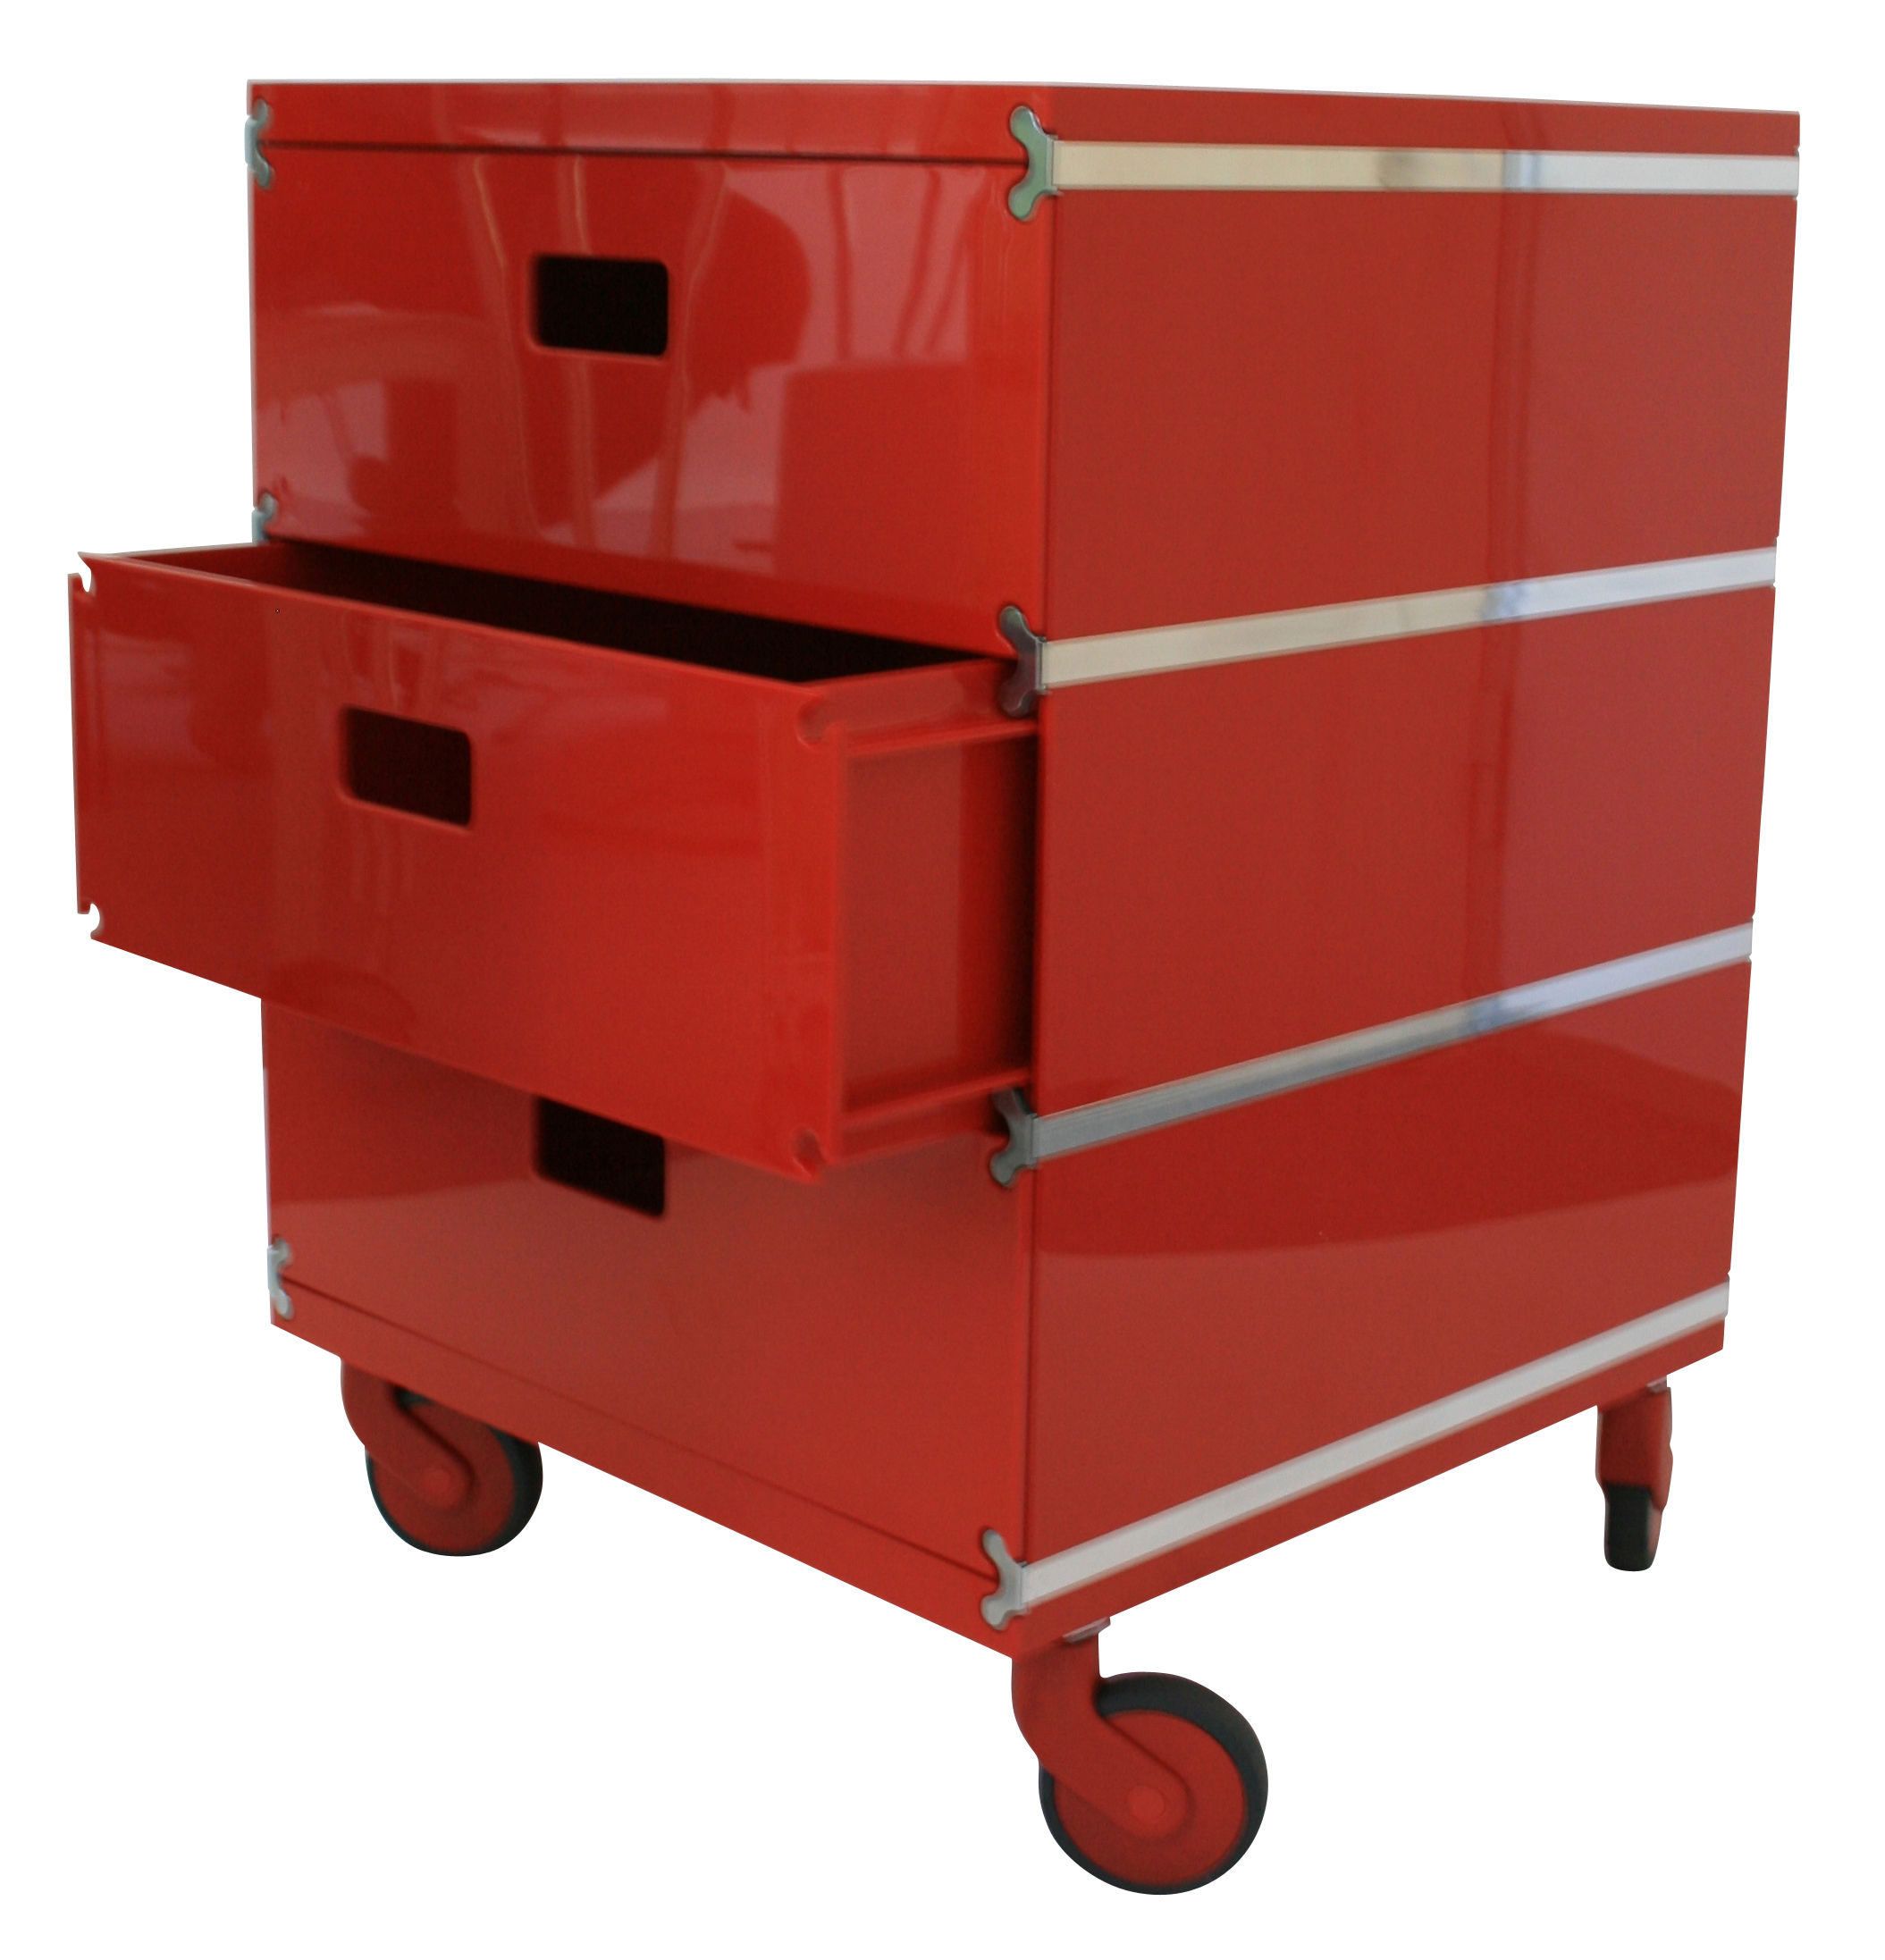 red desk chair no wheels small round bistro table and chairs plus unit mobile container 3 drawers on